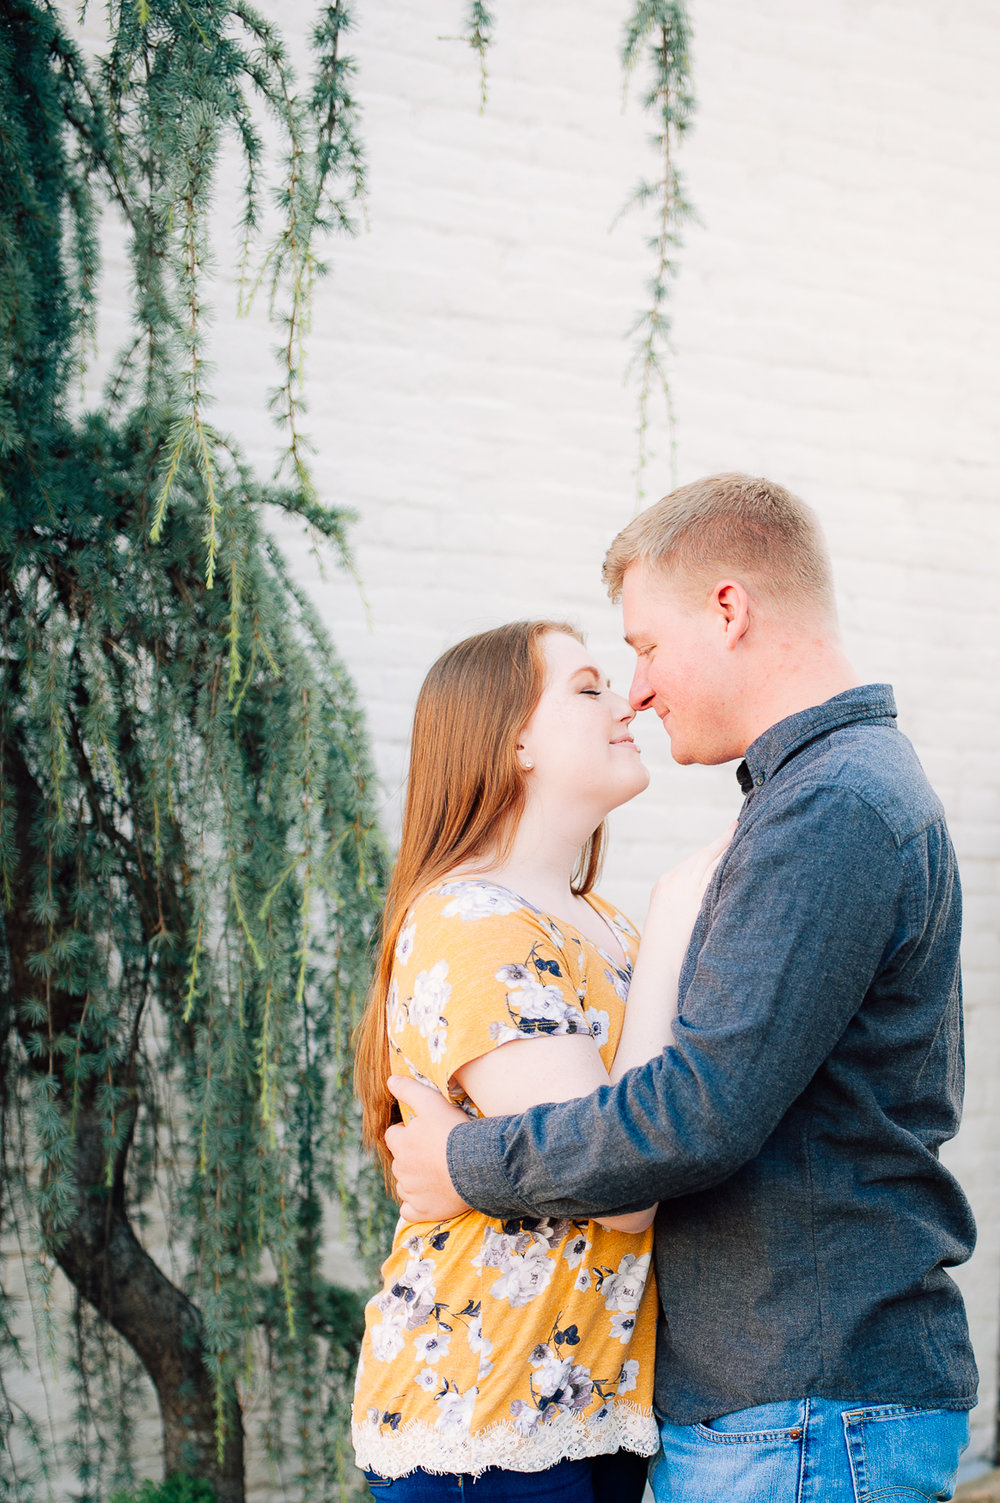 engagement_downtown_fredericksburg_virginiaweddingphotographer_youseephotography_ErinBrad (1).jpg